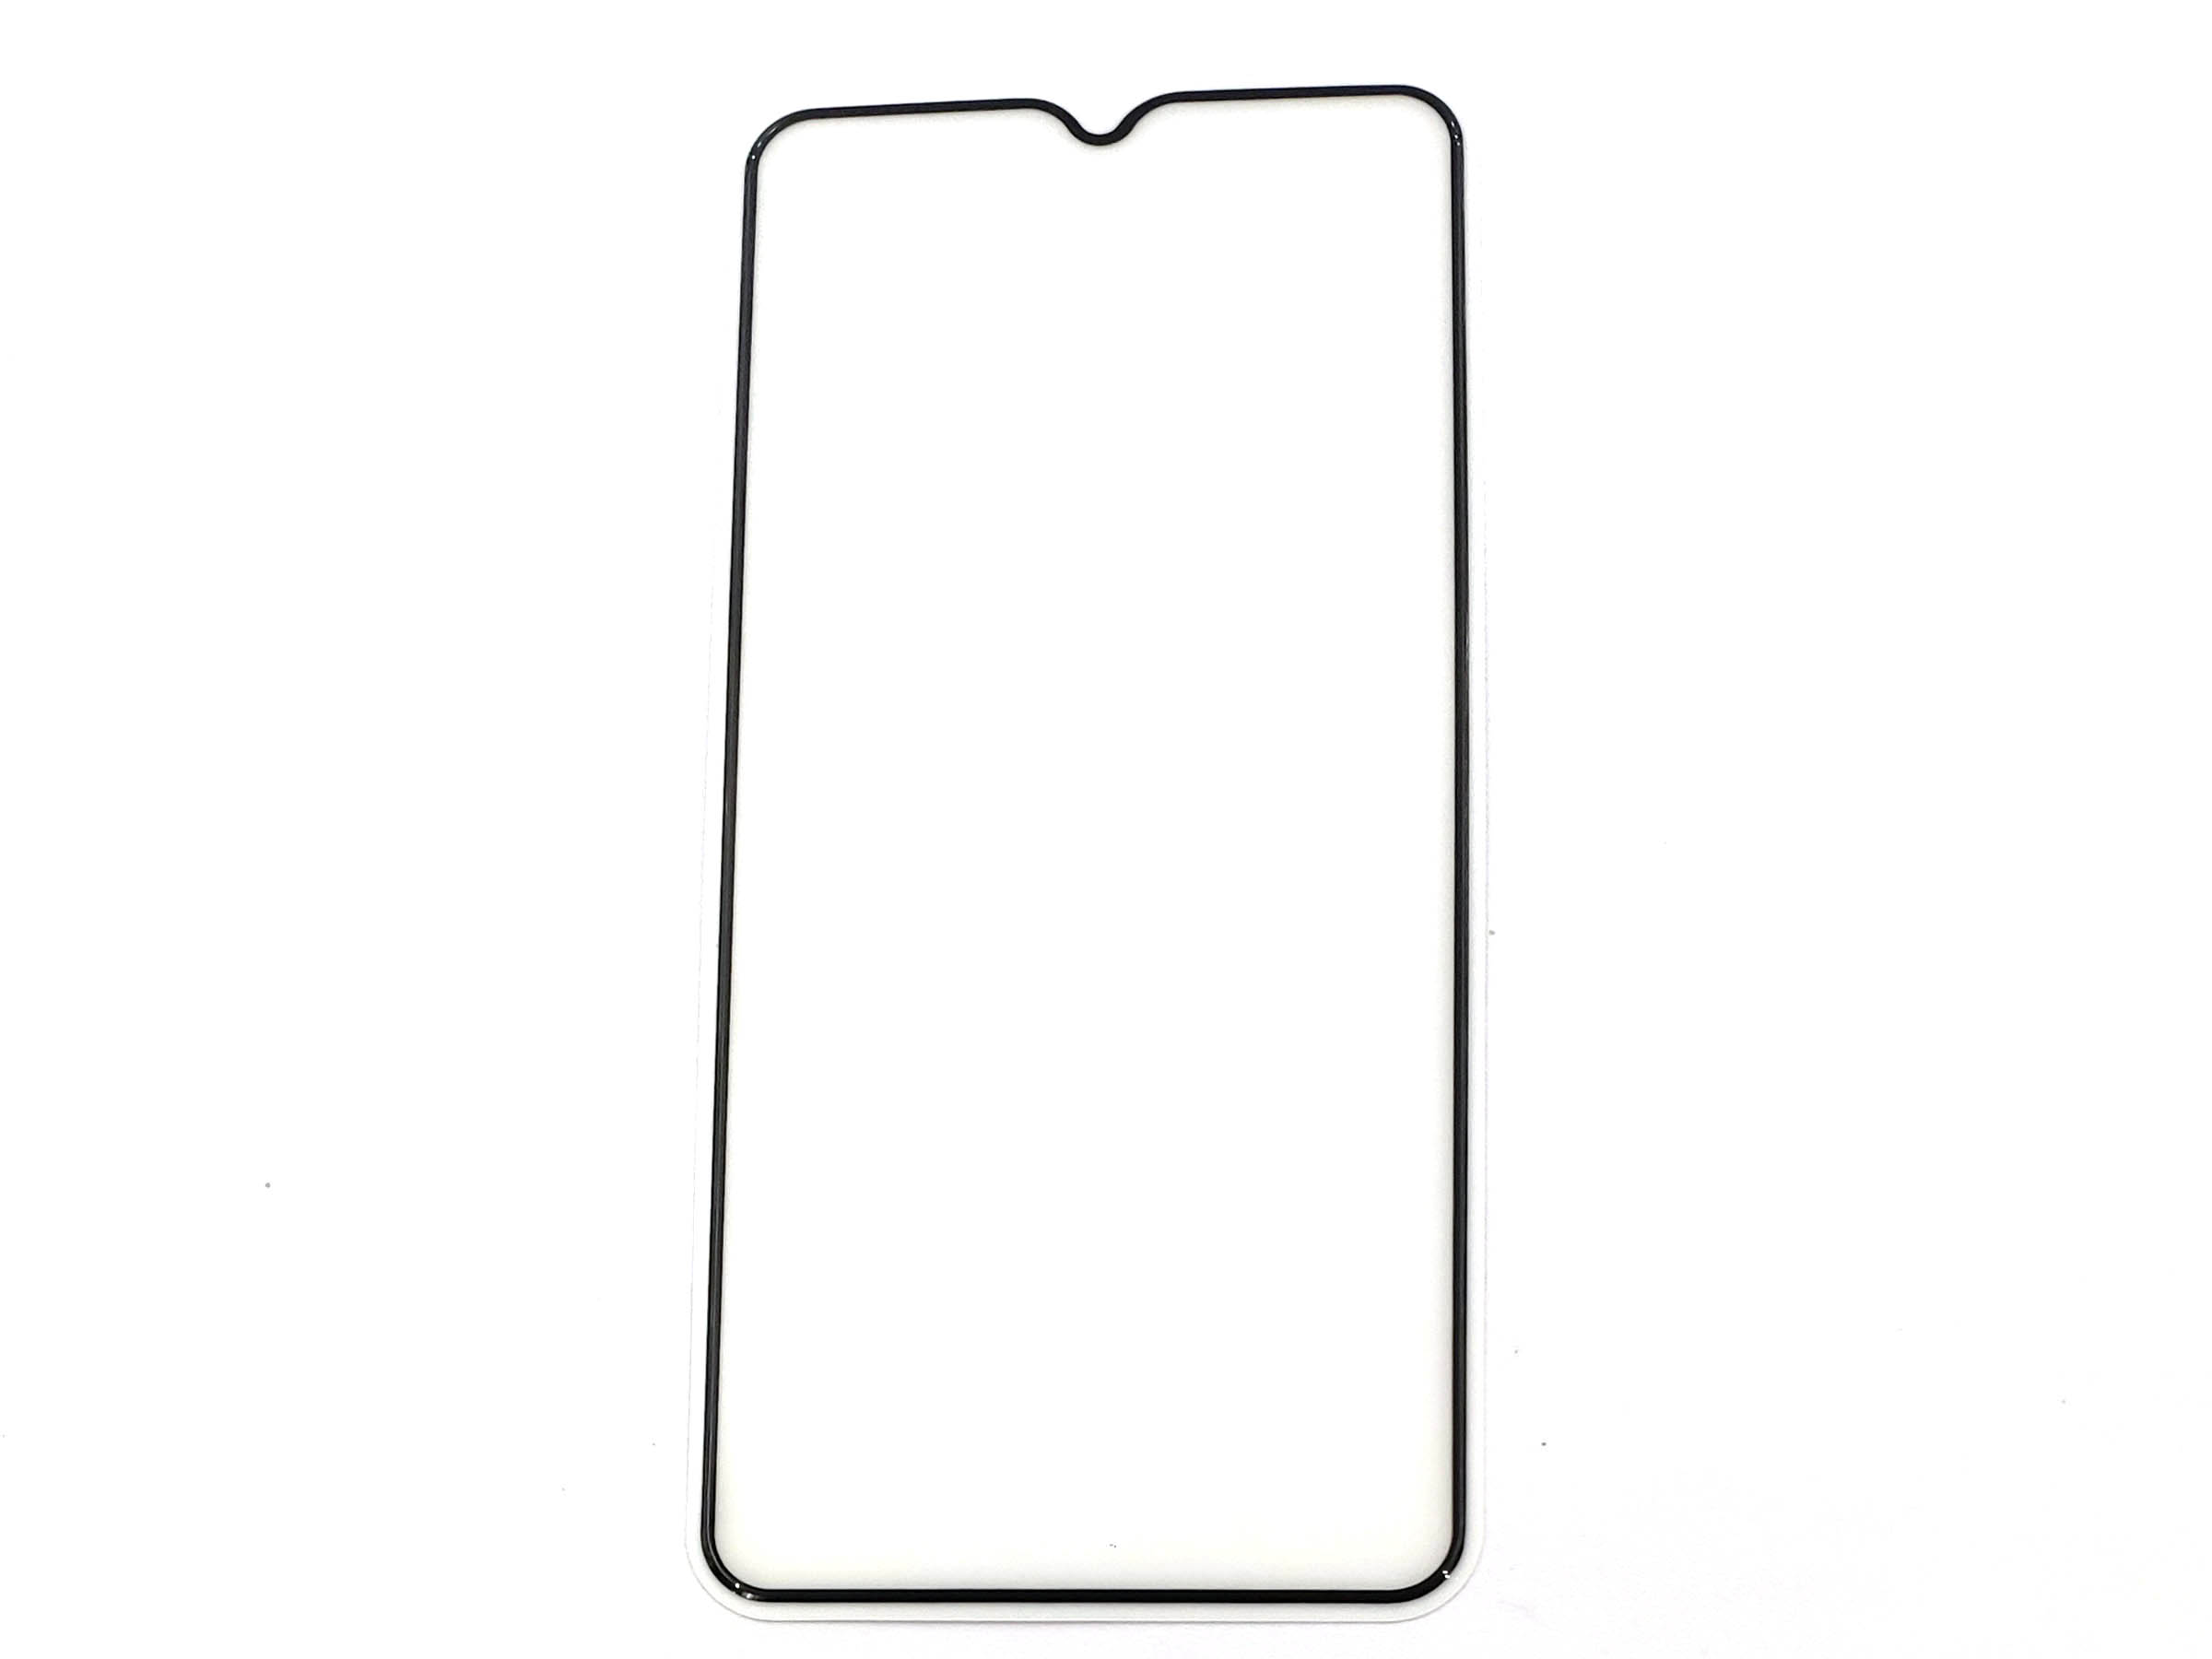 Digitizer Touch Screen for Samsung Galaxy Tab 3 10.1 GT-P5210 (wifi version) - White